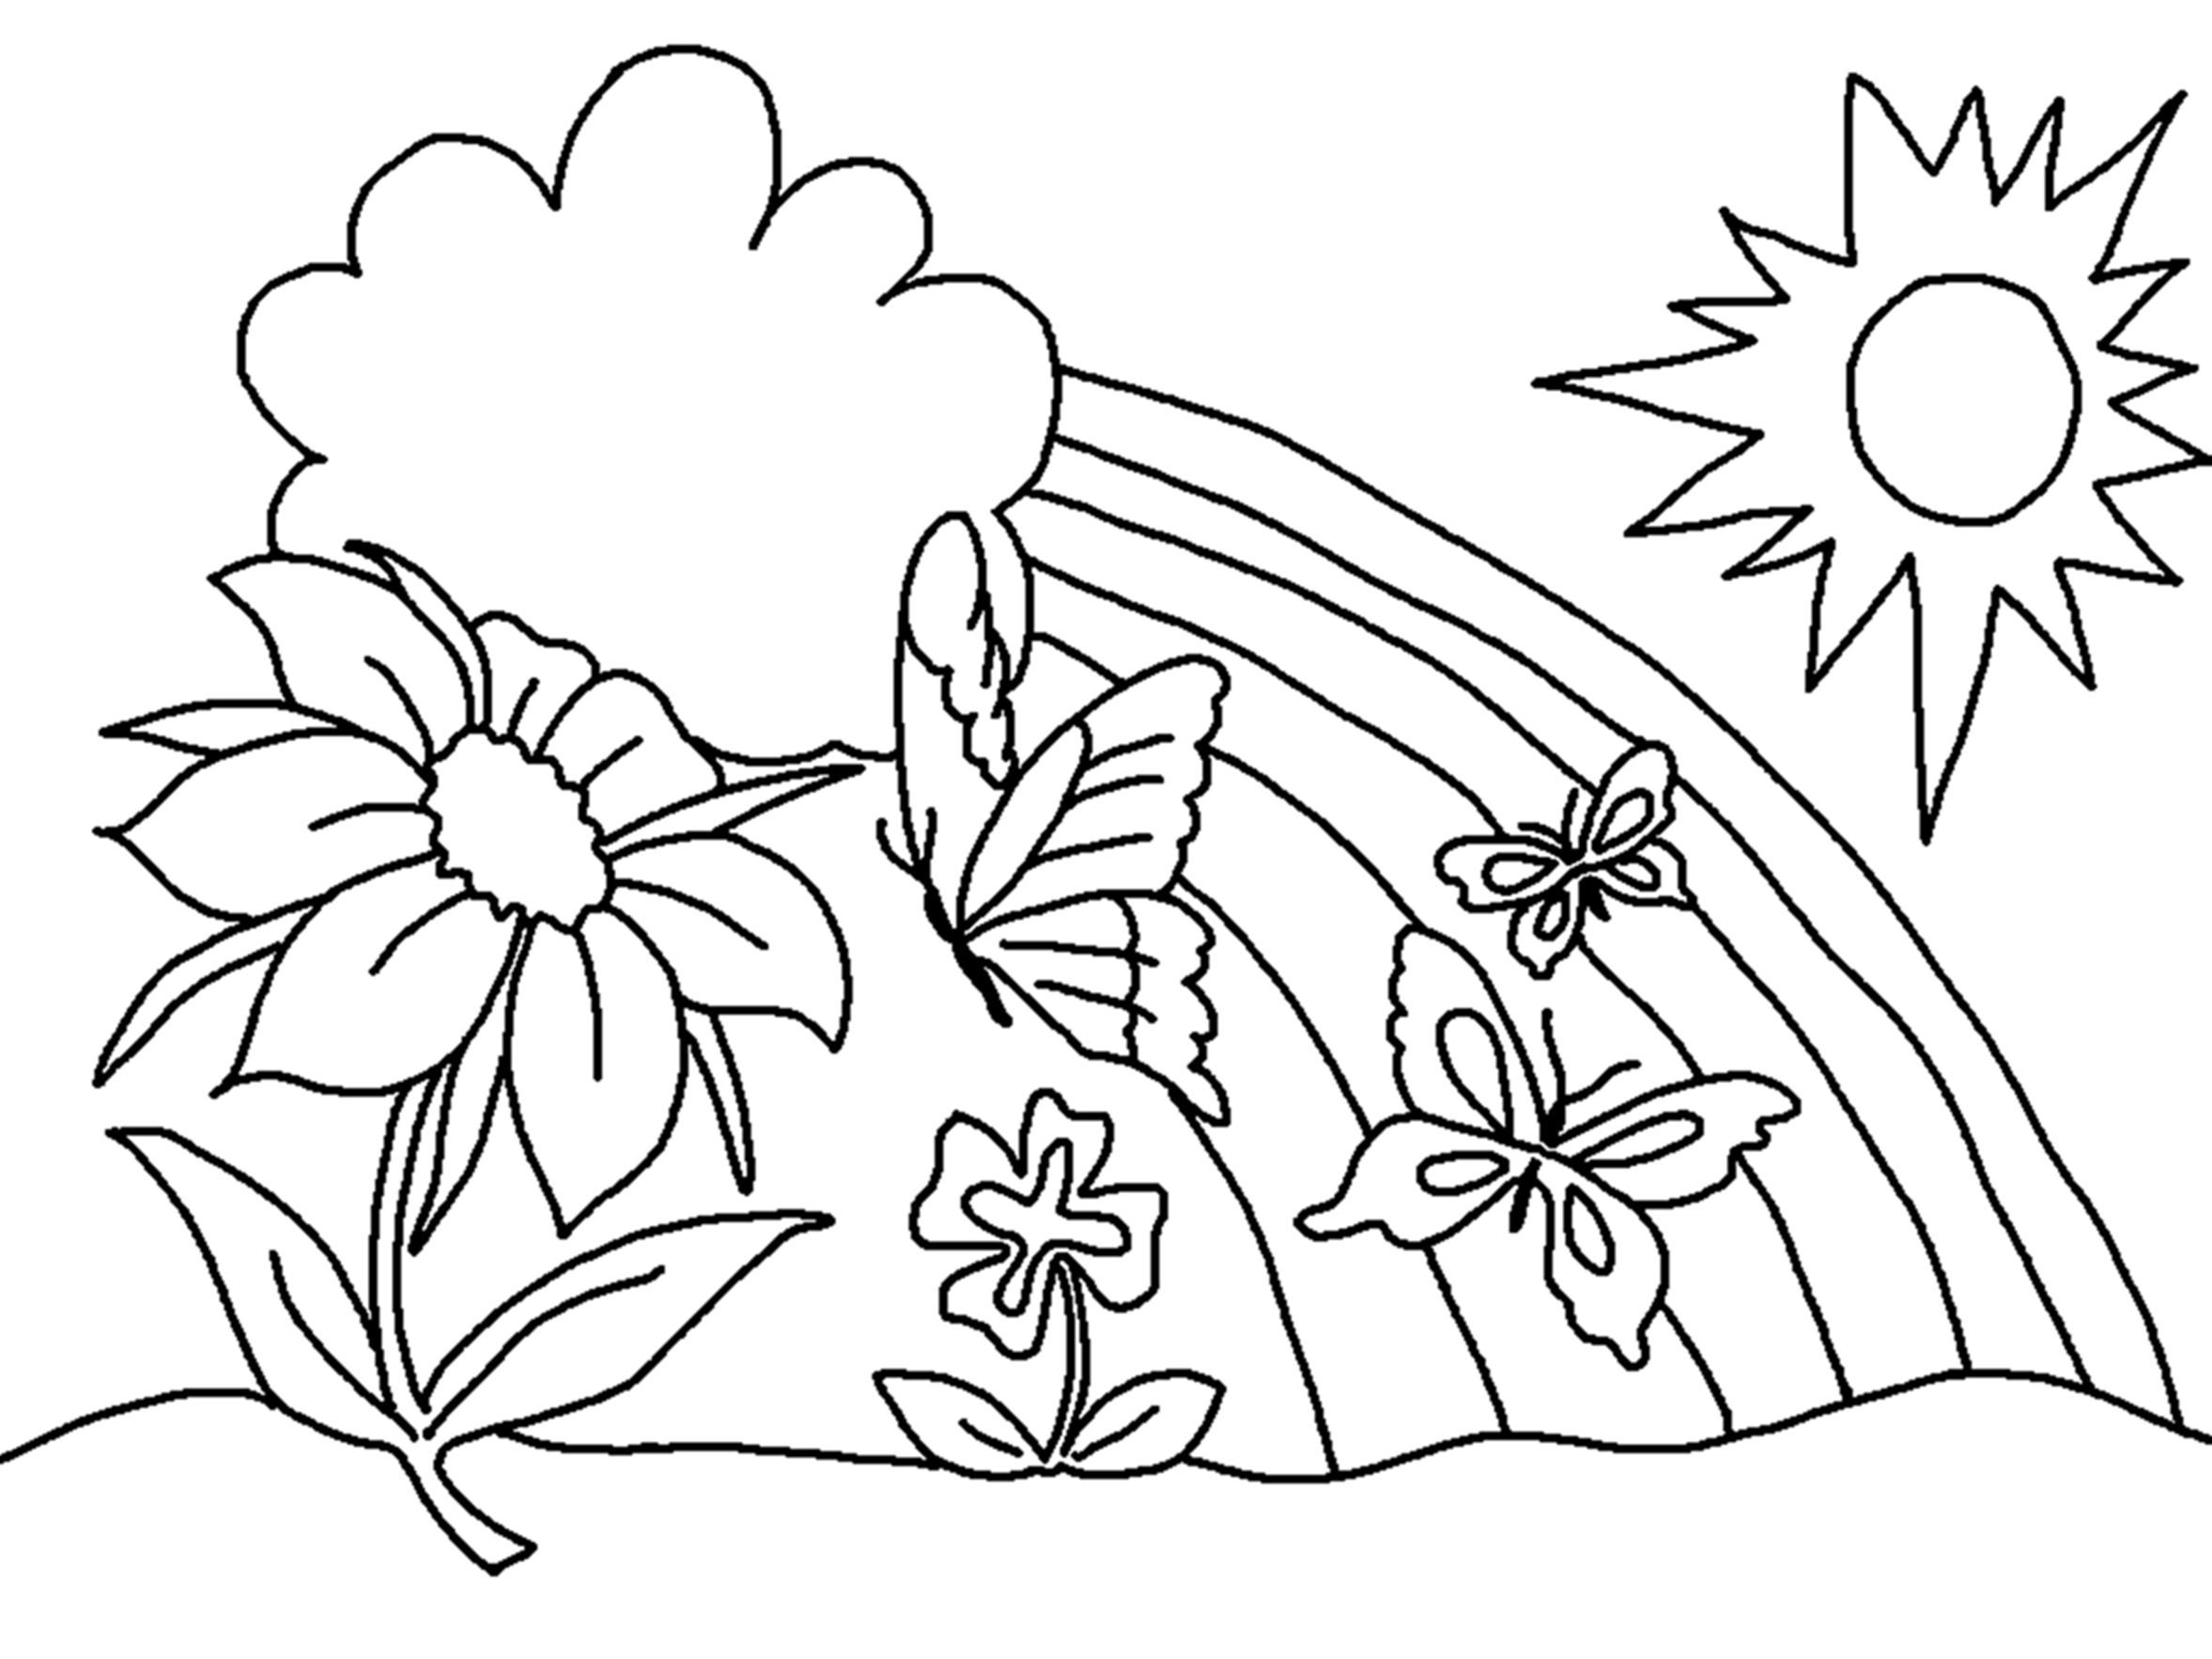 Free Printable Flower Coloring Pages Enchanting Free Printable Flower Coloring Pages For Kids  Best Coloring .